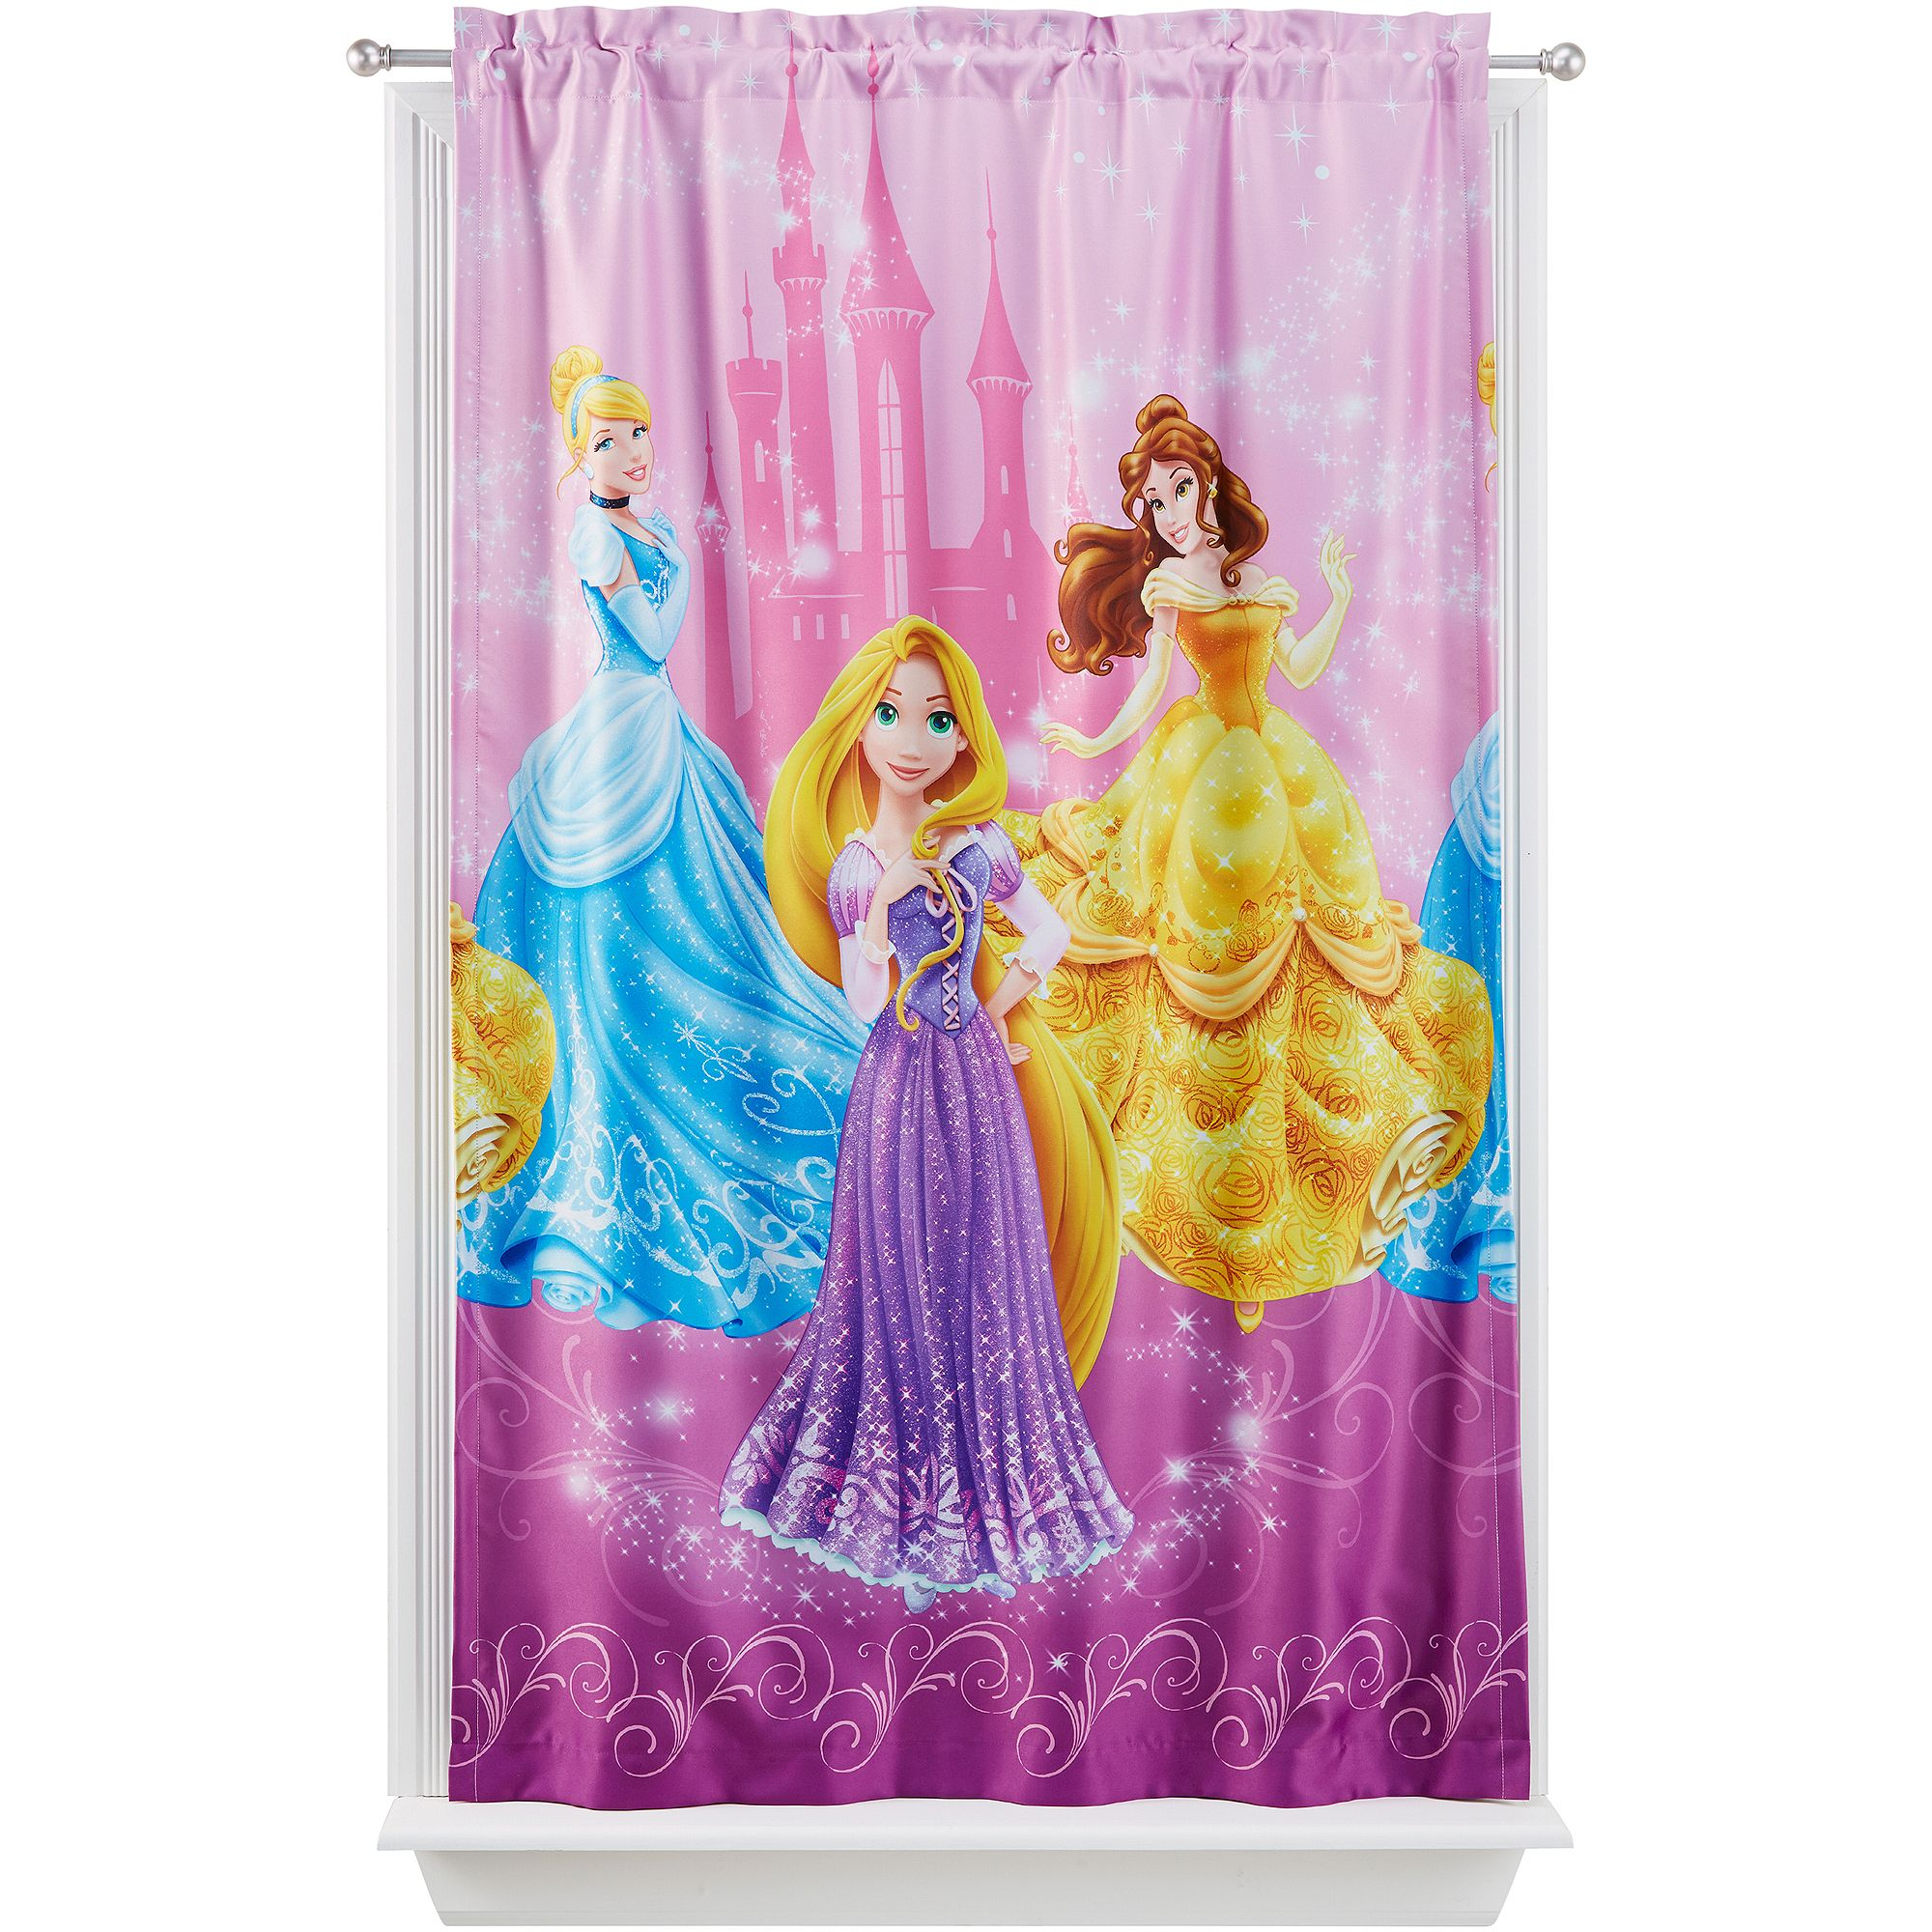 curtain kids photo panel bright walmart of com eclipse blackout curtains x kendall bedroom